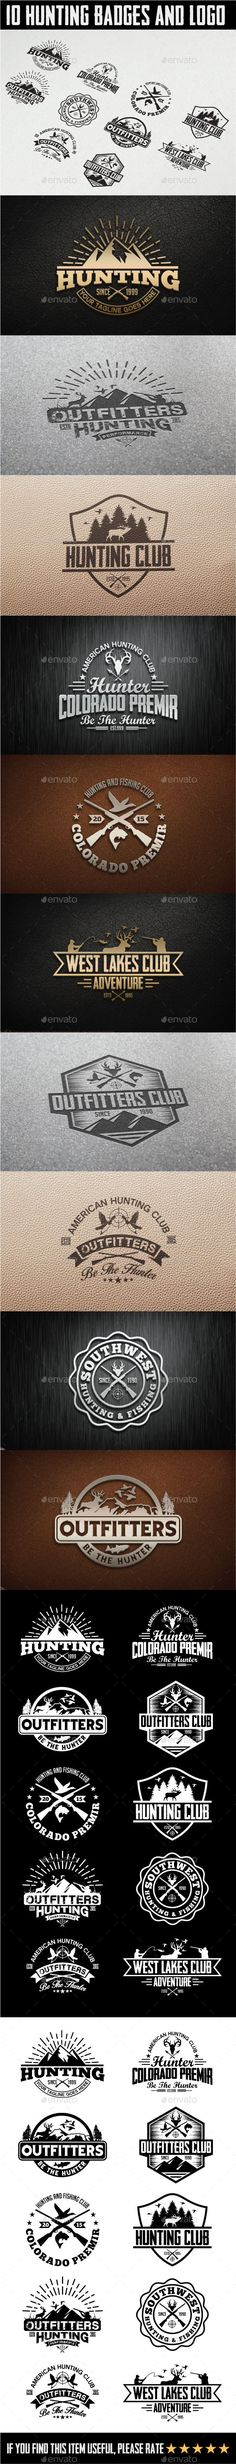 10 Hunting Vintage Badges and Logos #logos #badges Download: http://graphicriver.net/item/10-hunting-vintage-badges-and-logos/11560070?ref=ksioks